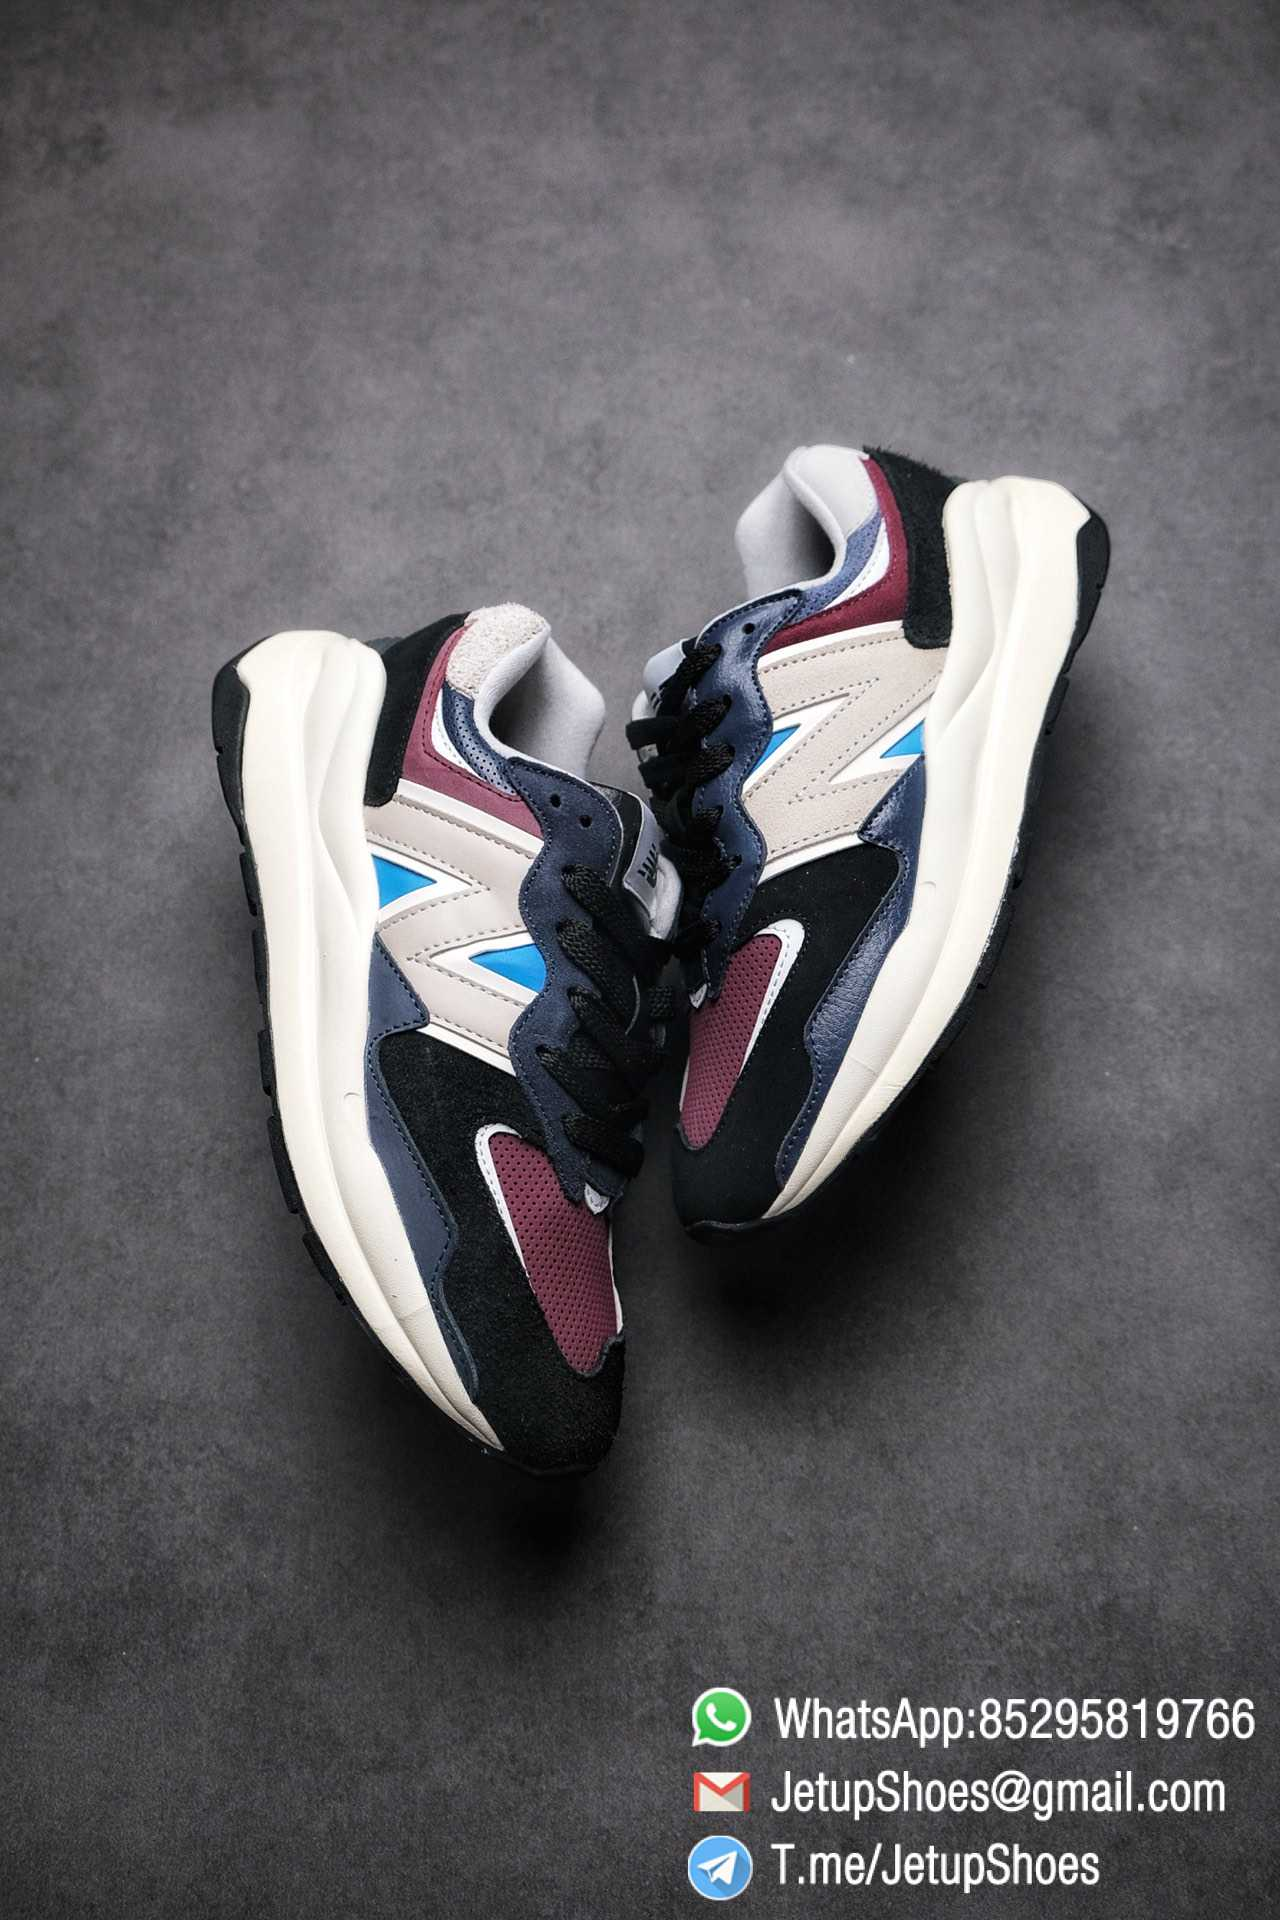 Best Replica New Balance 57 40 Navy Burgundy SKU M5740TB Navy And Burgundy Panels Appear Top Quality 03